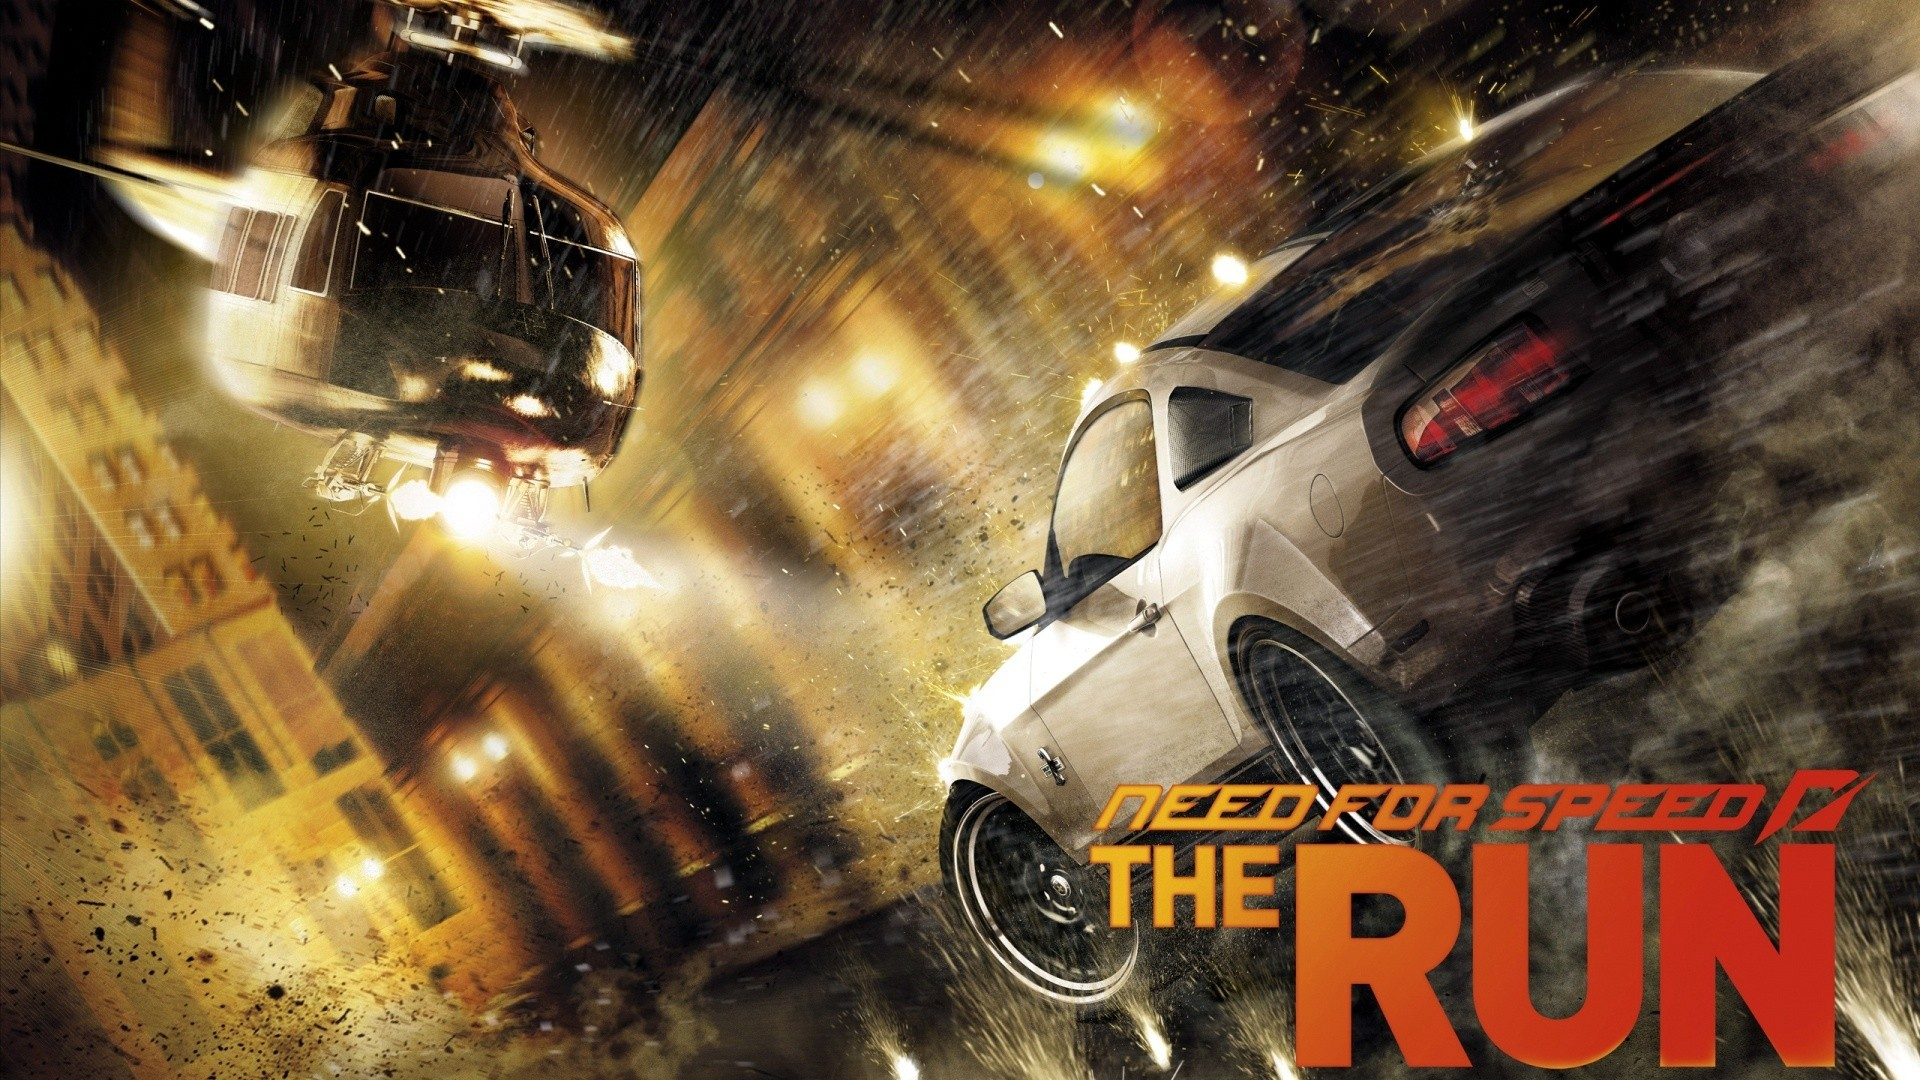 Need For Speed The Run Video Games Video Game Art Car Vehicle Helicopter 1920x1080